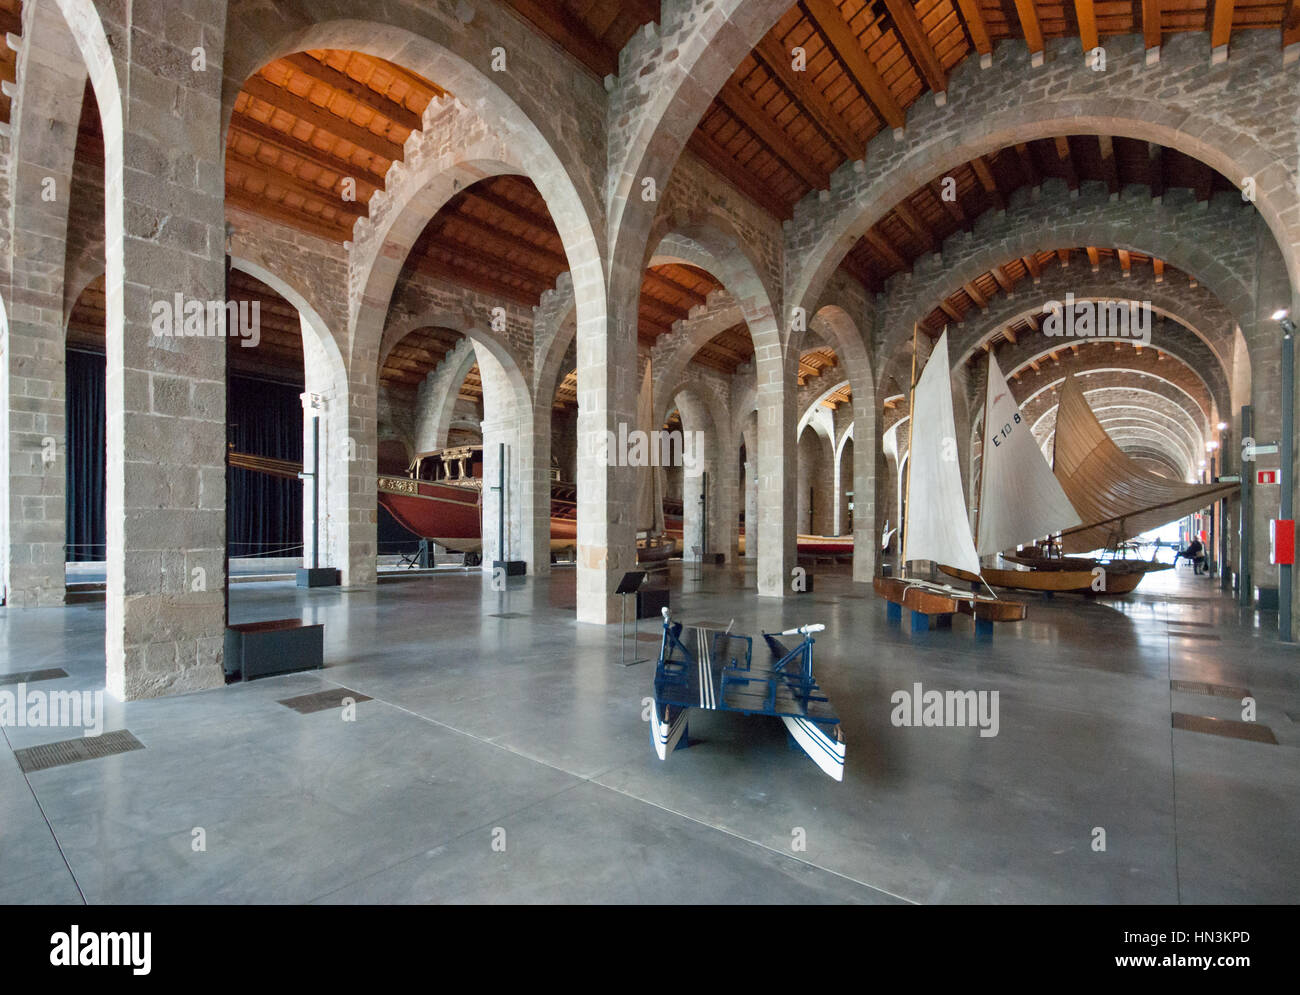 View of the Museu Maritim - Maritime Museum of Barcelona housed in the Frassanes Reials the Medieval Royal shipyards - Stock Image